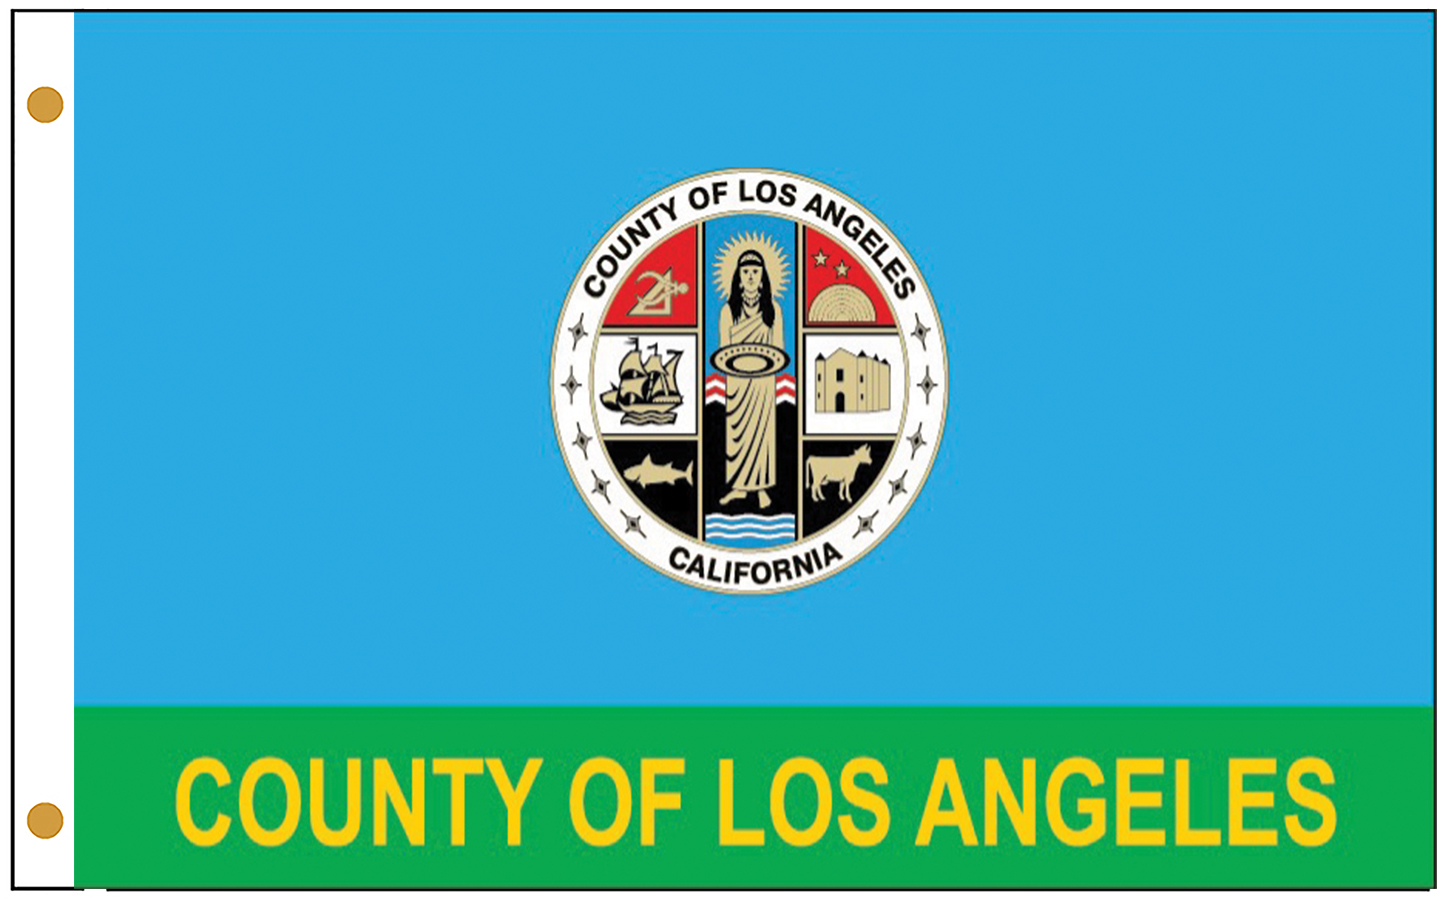 County of Los Angeles Flags